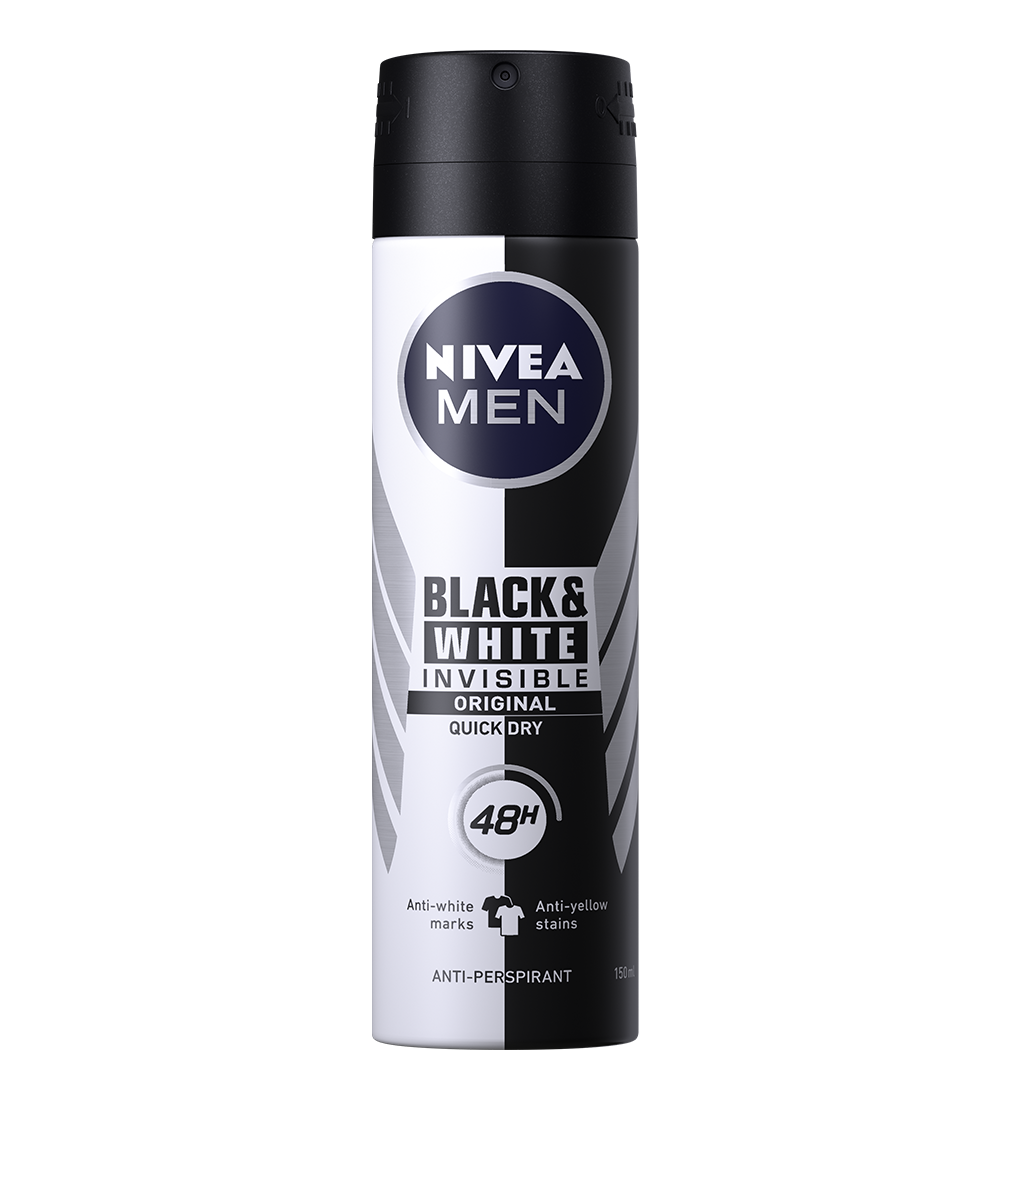 Nivea Men - Black & White Invisible Power Deodorant spray